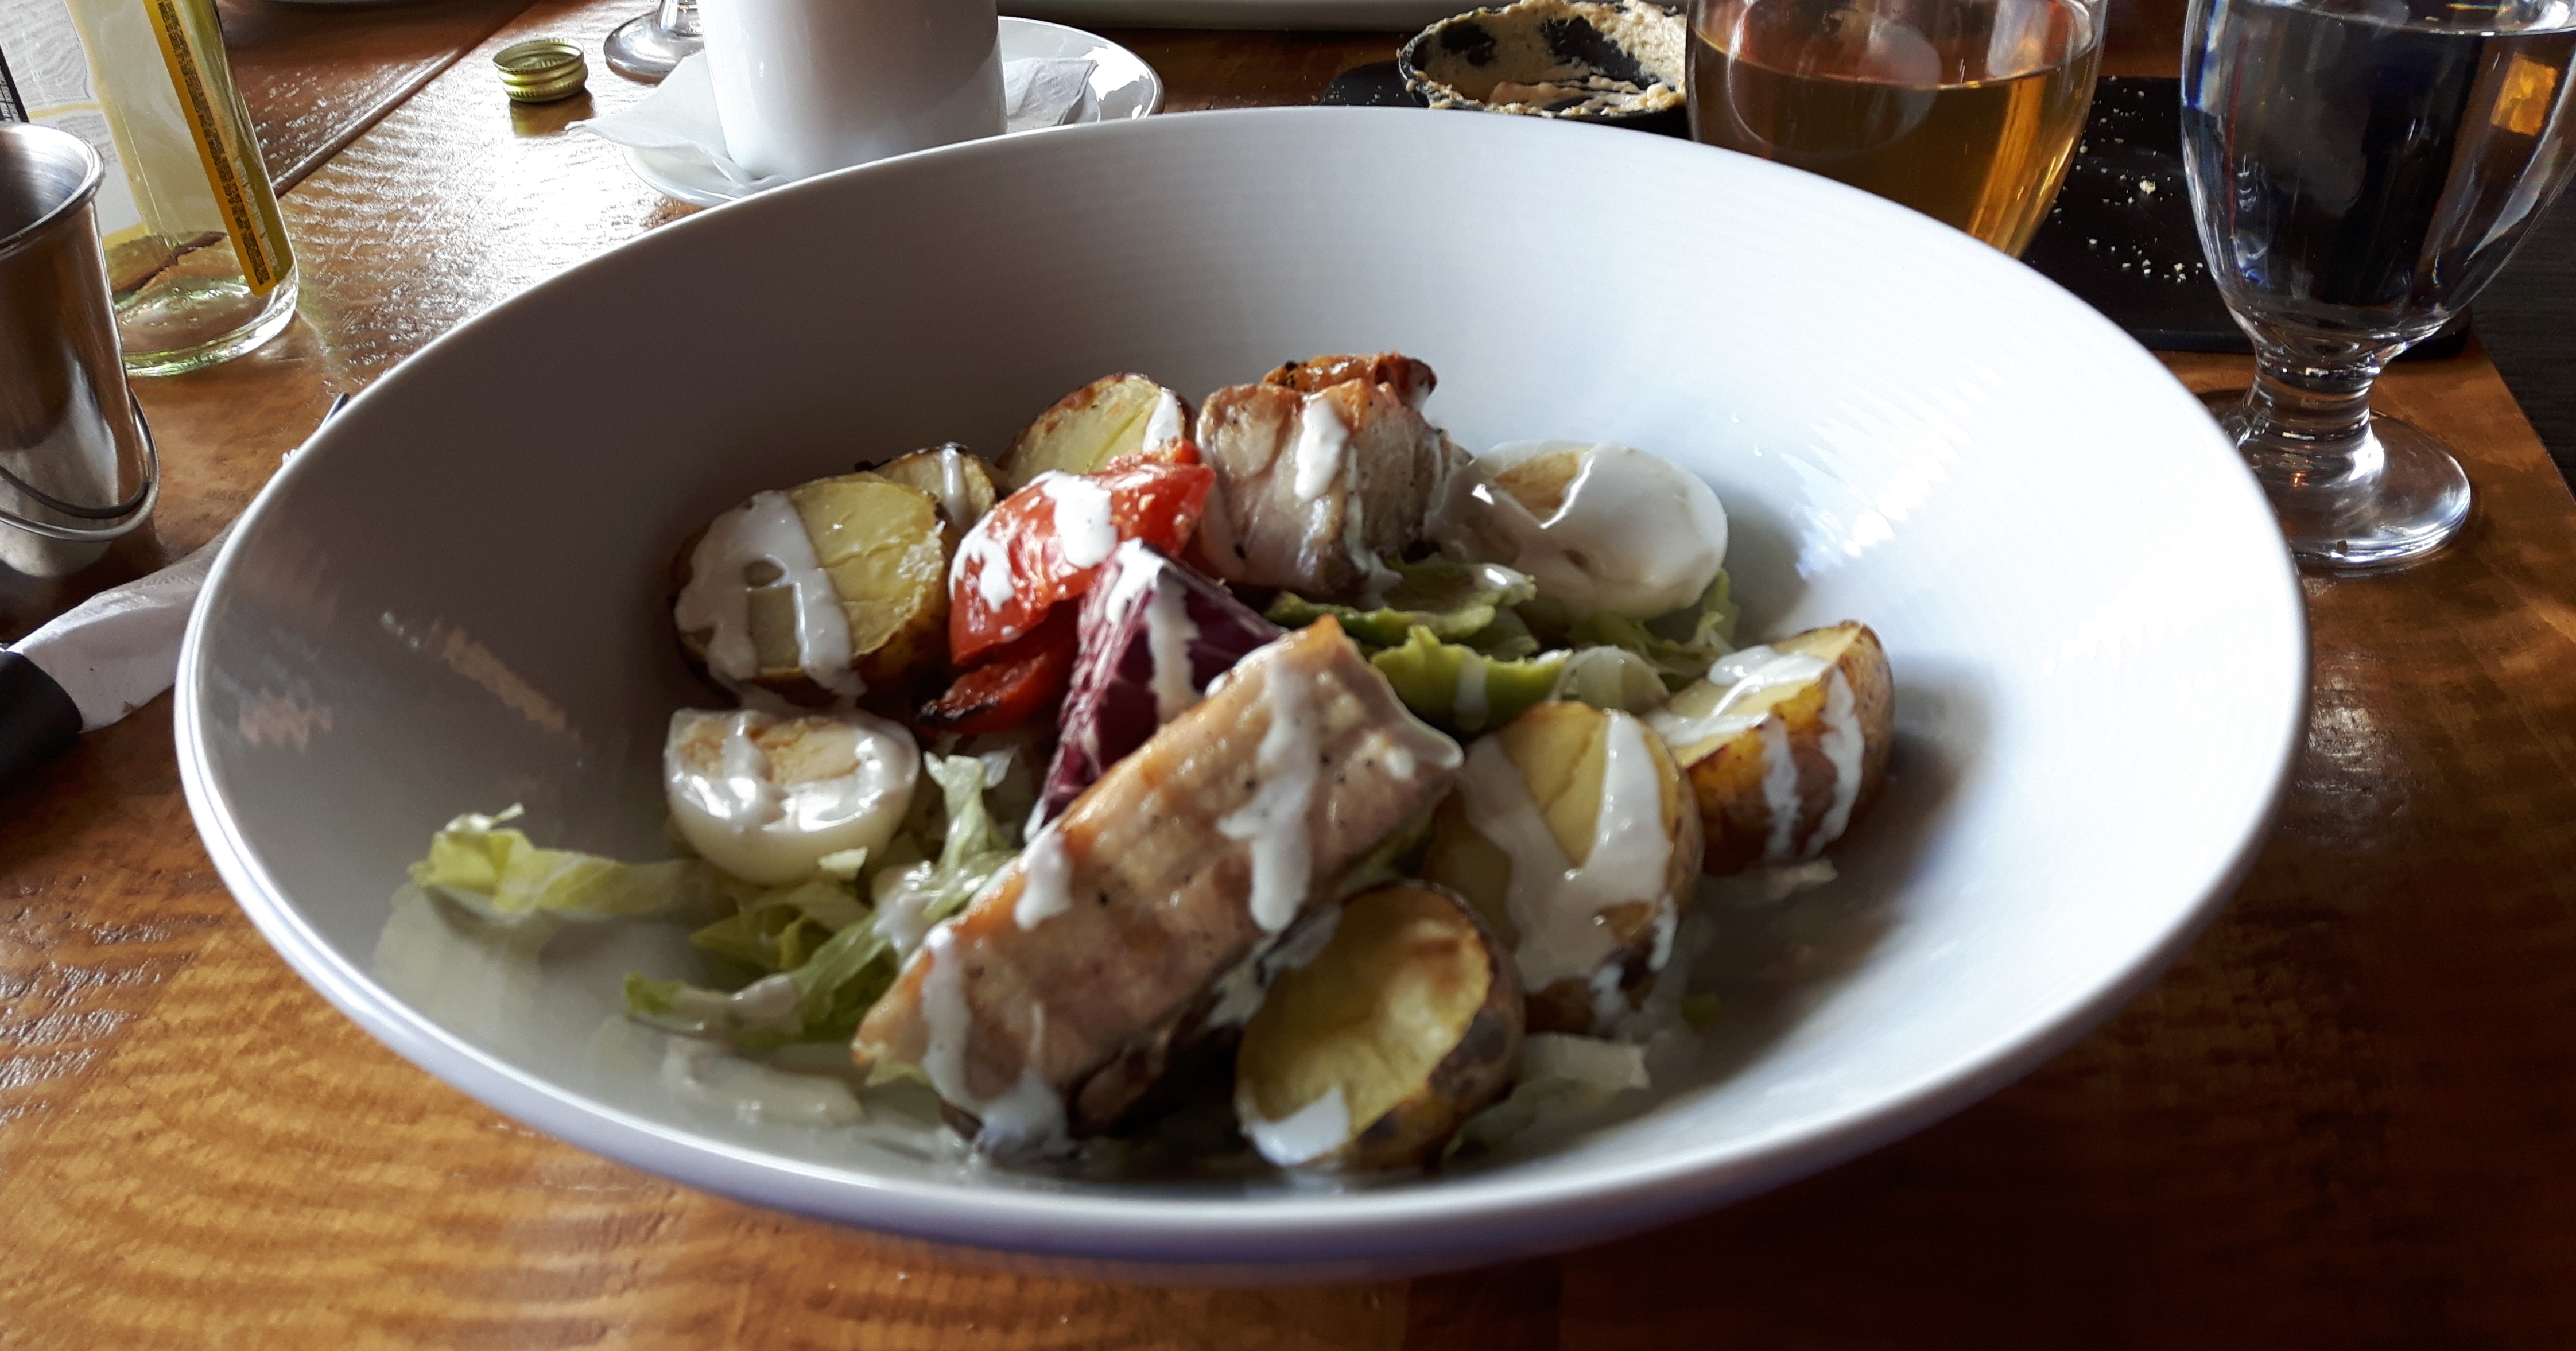 Cobb Salad Baby Iceberg Lettuce - Duck Egg Avocado - Pork Belly Beefsteak Tomato Blue Cheese Dressing - Herb & GarlicToast